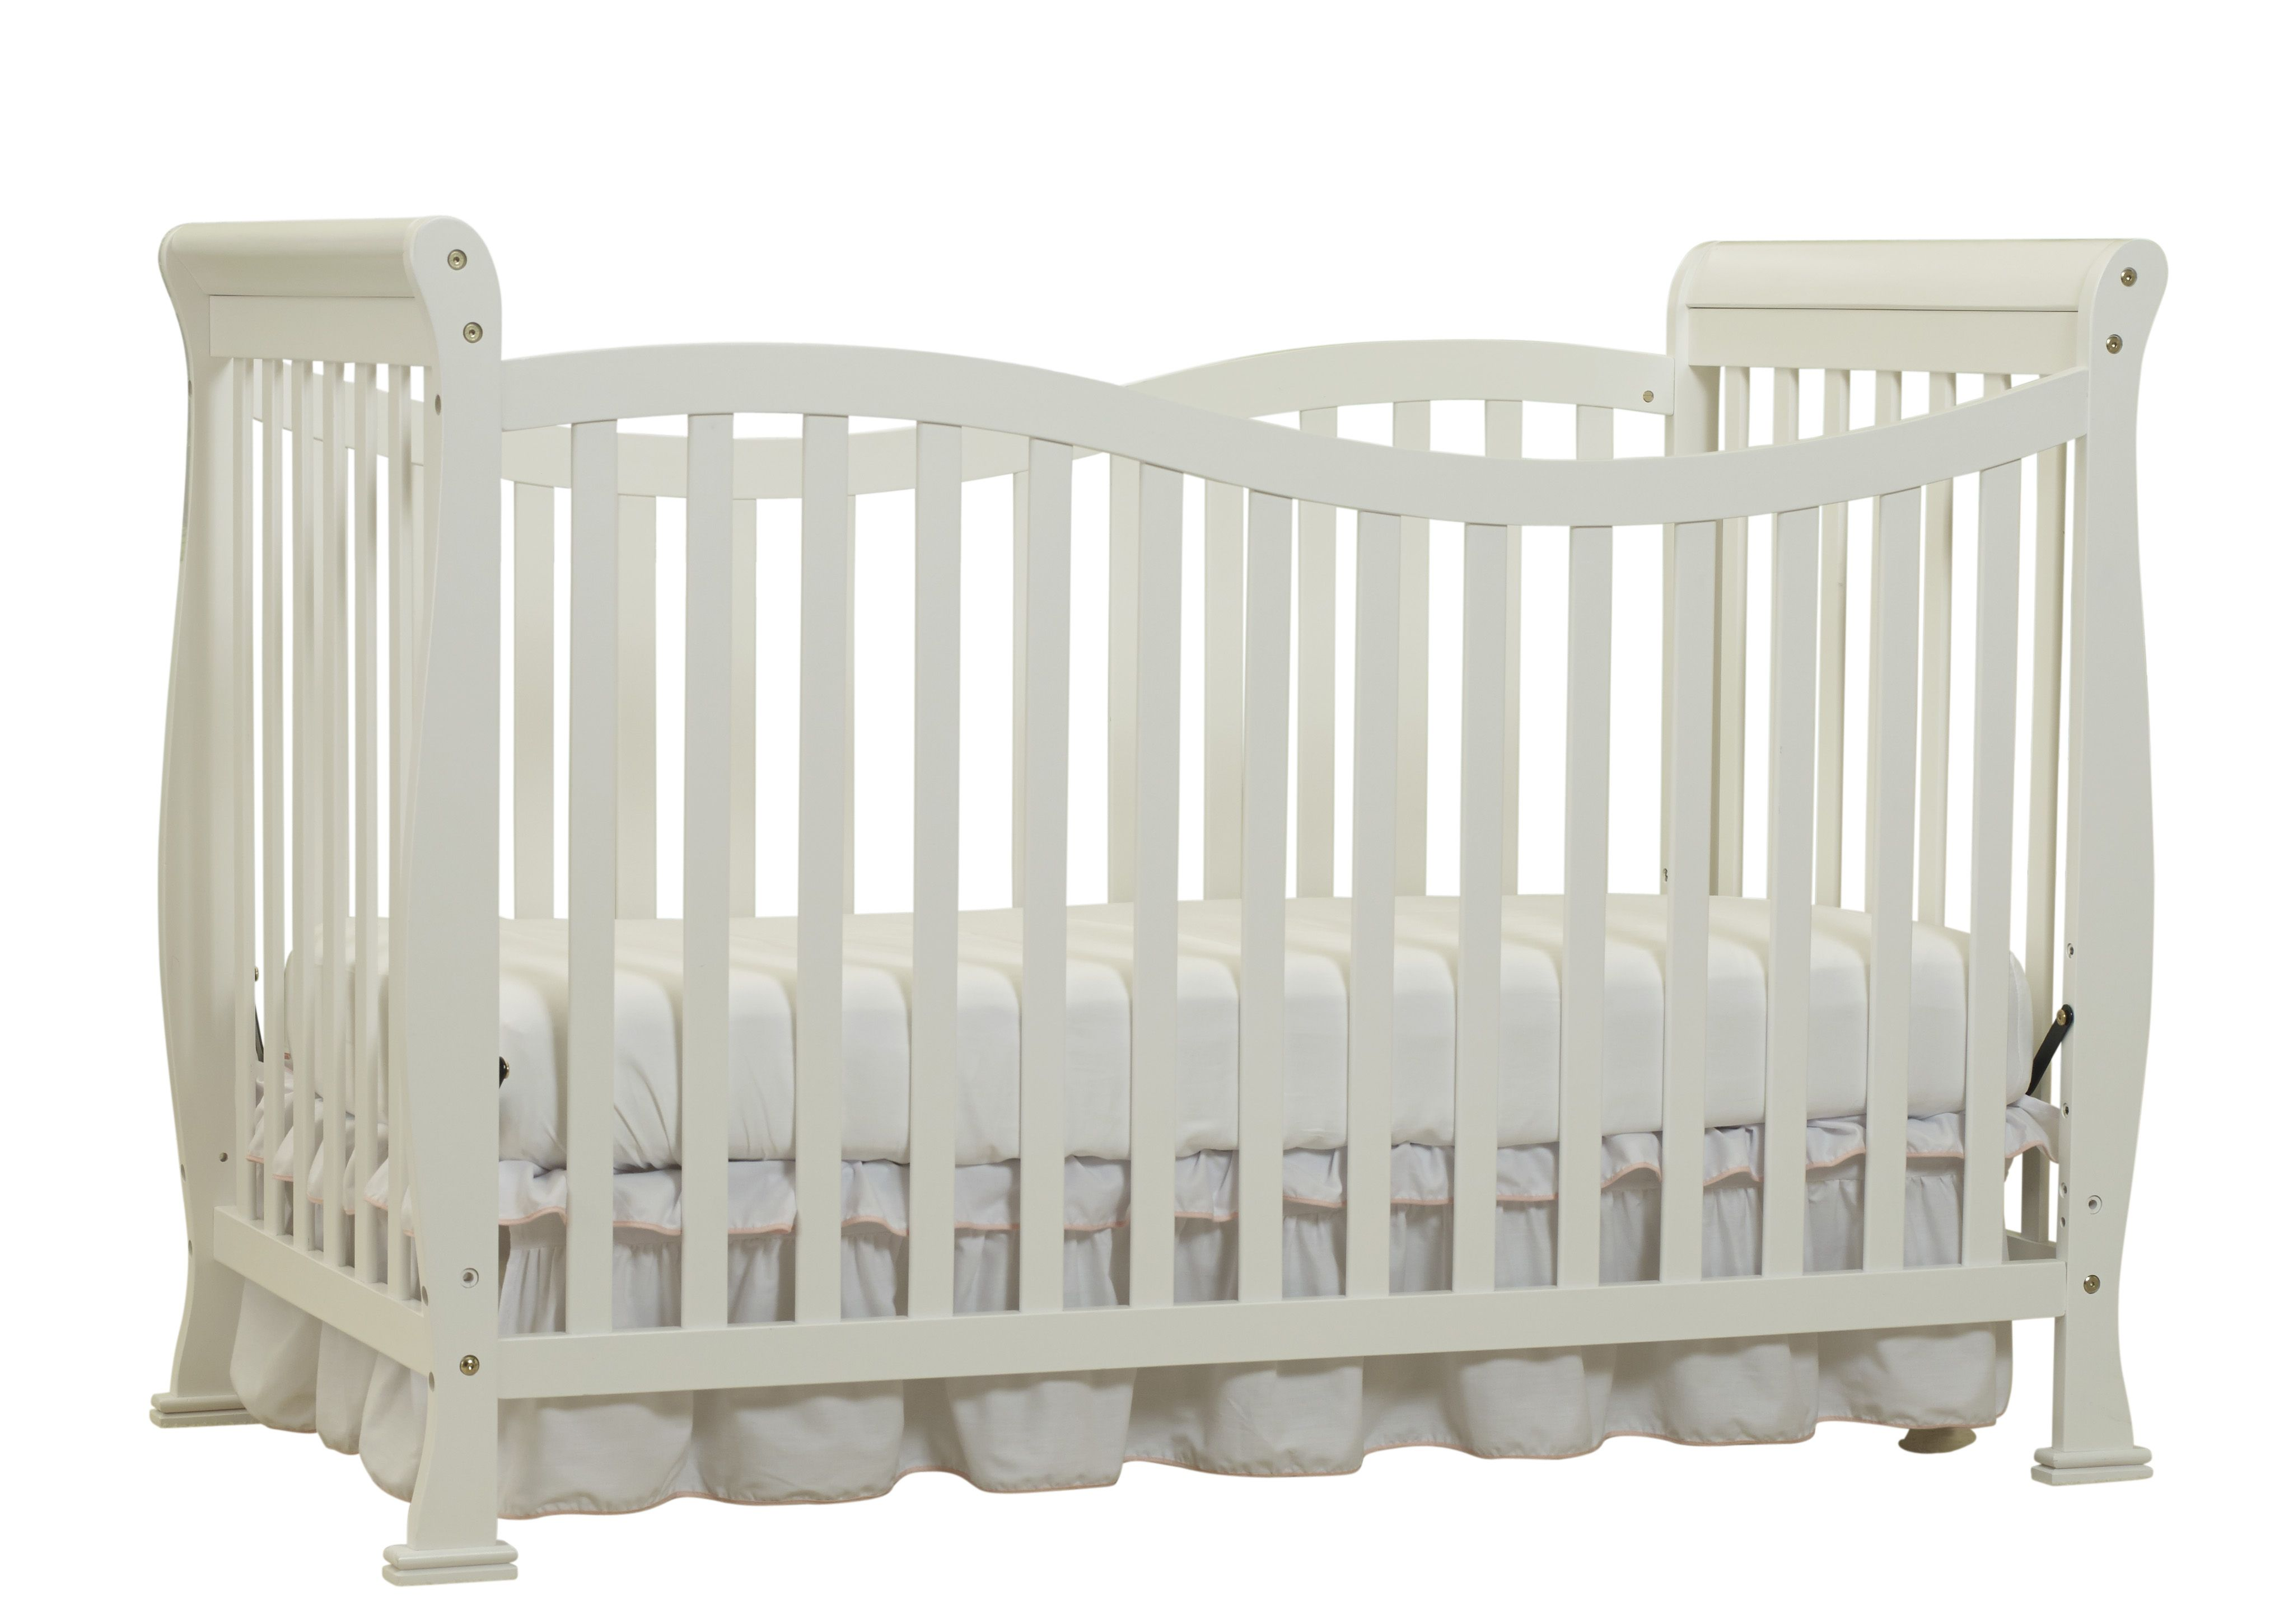 Kmart: Deals on Furniture, Toys, Clothes, Tools, Tablets | Baby ...